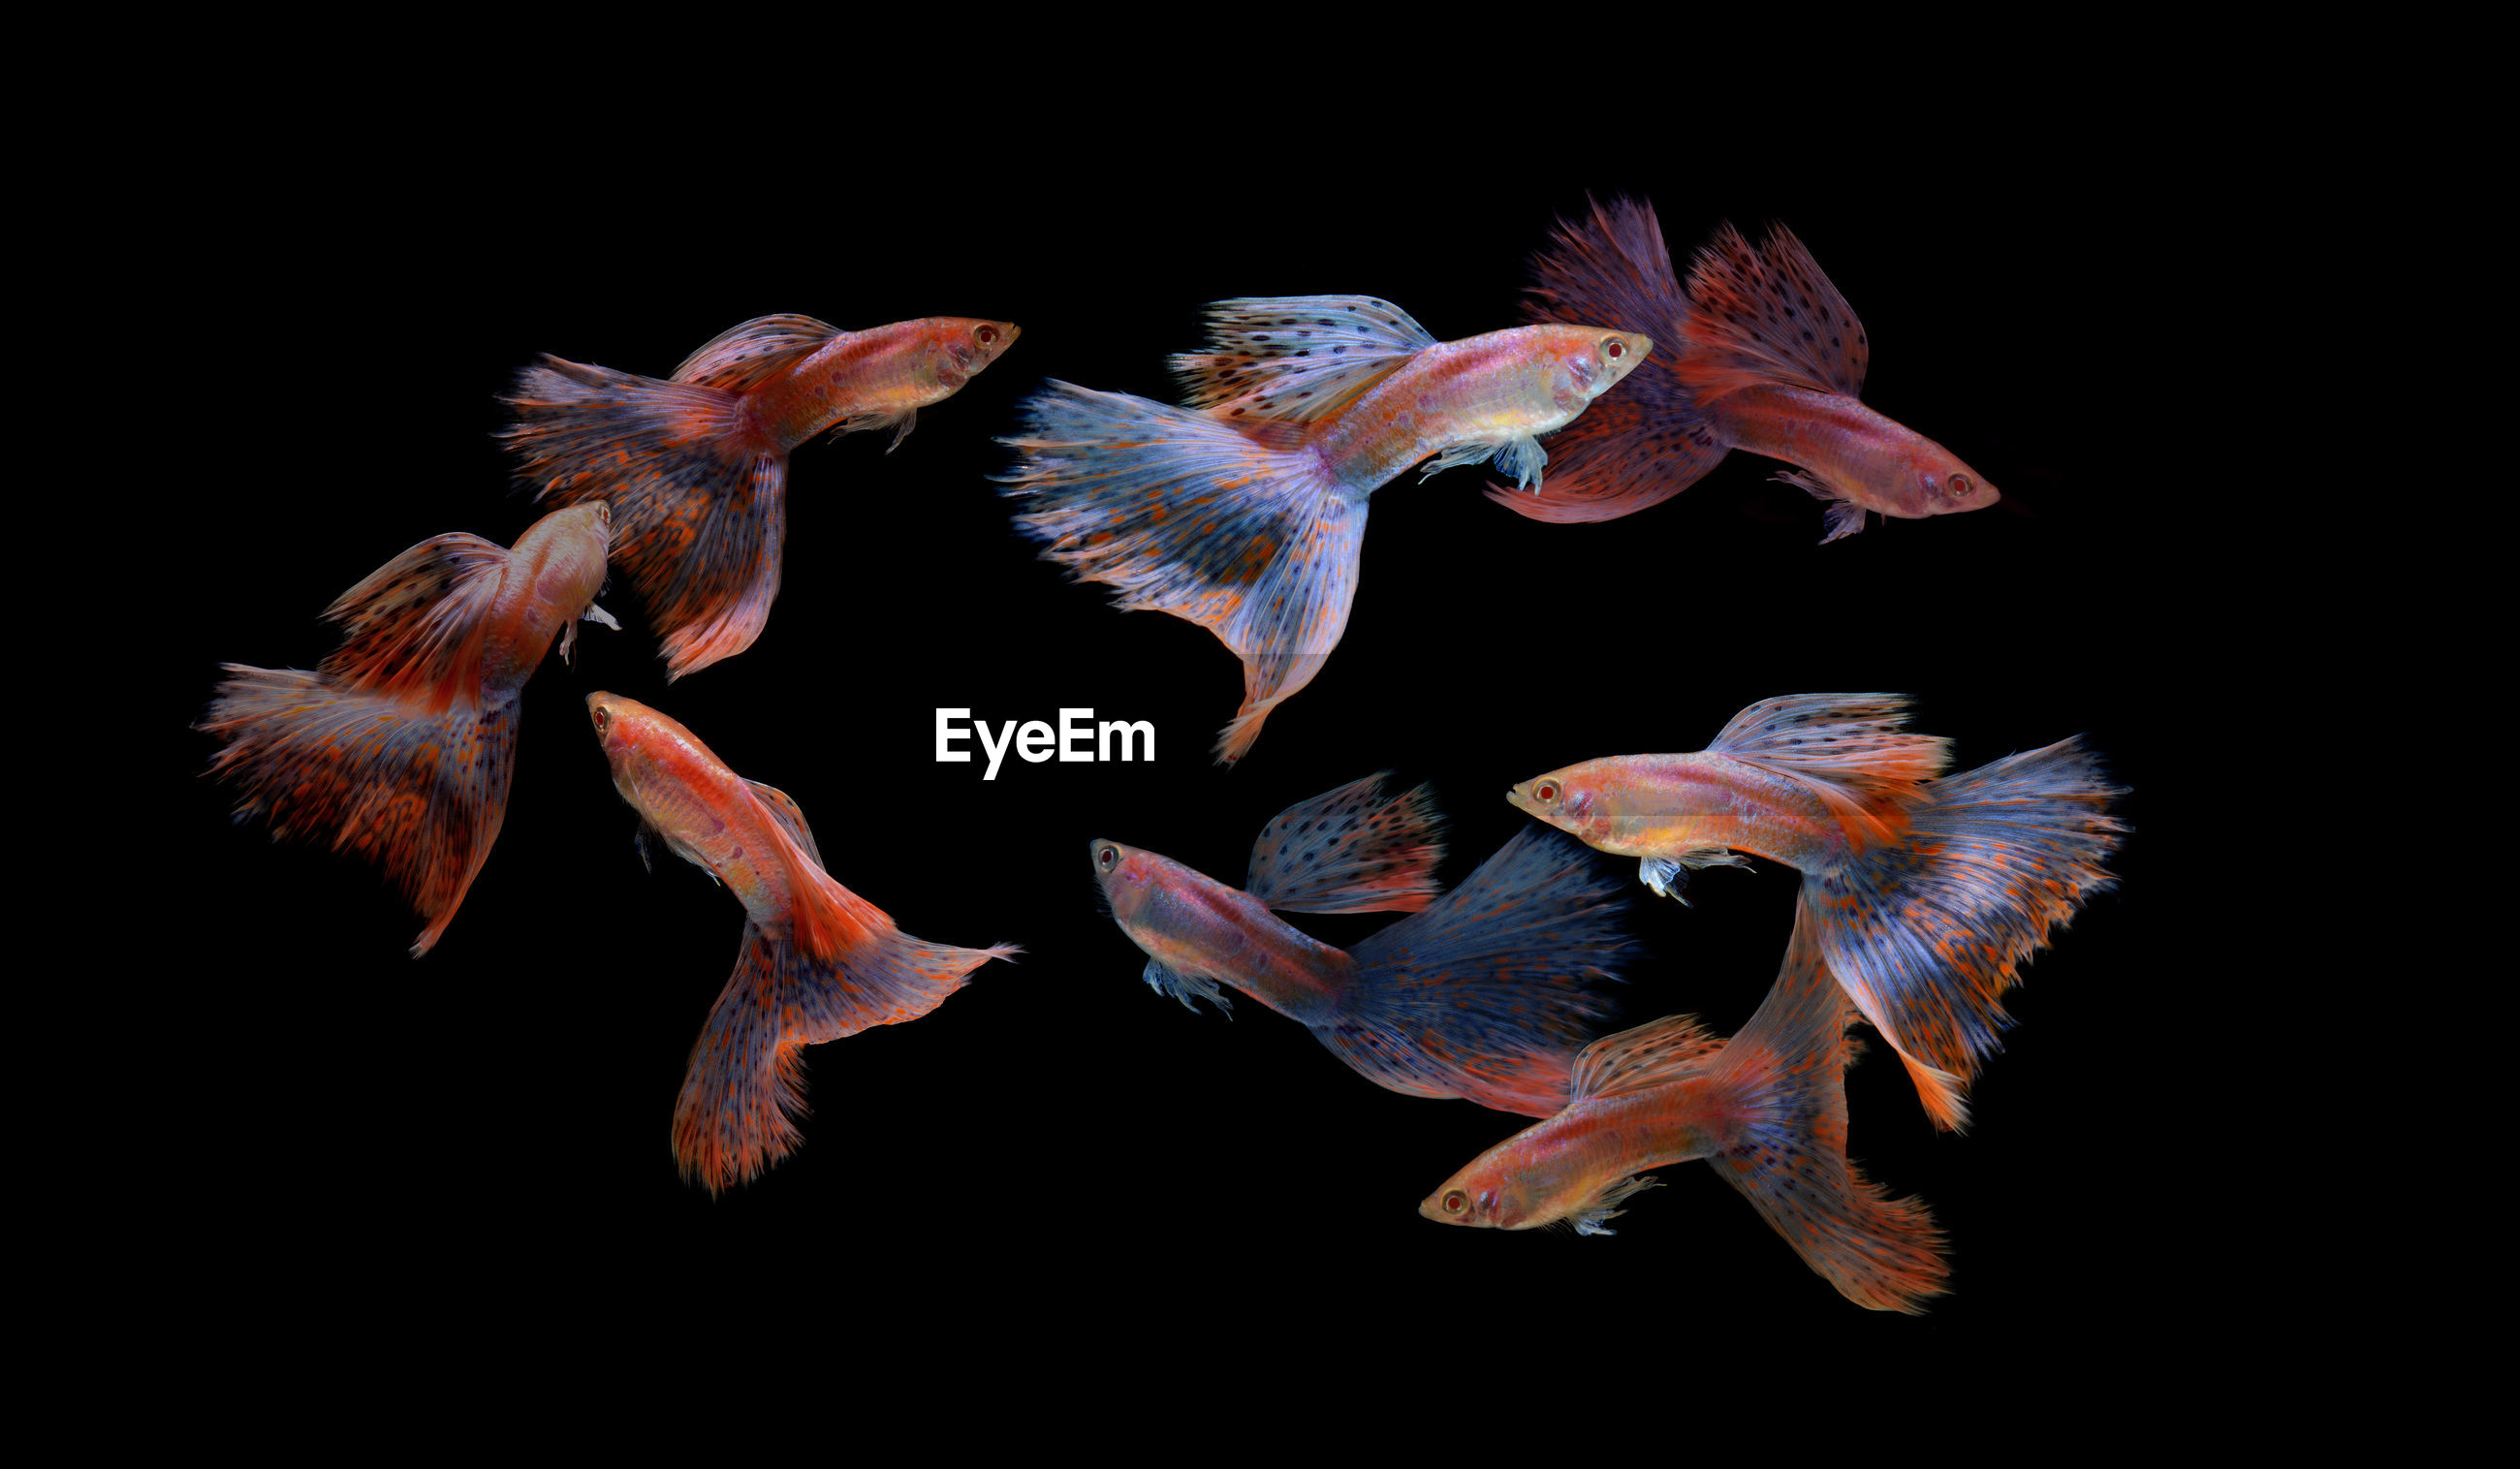 Group of fish over black background